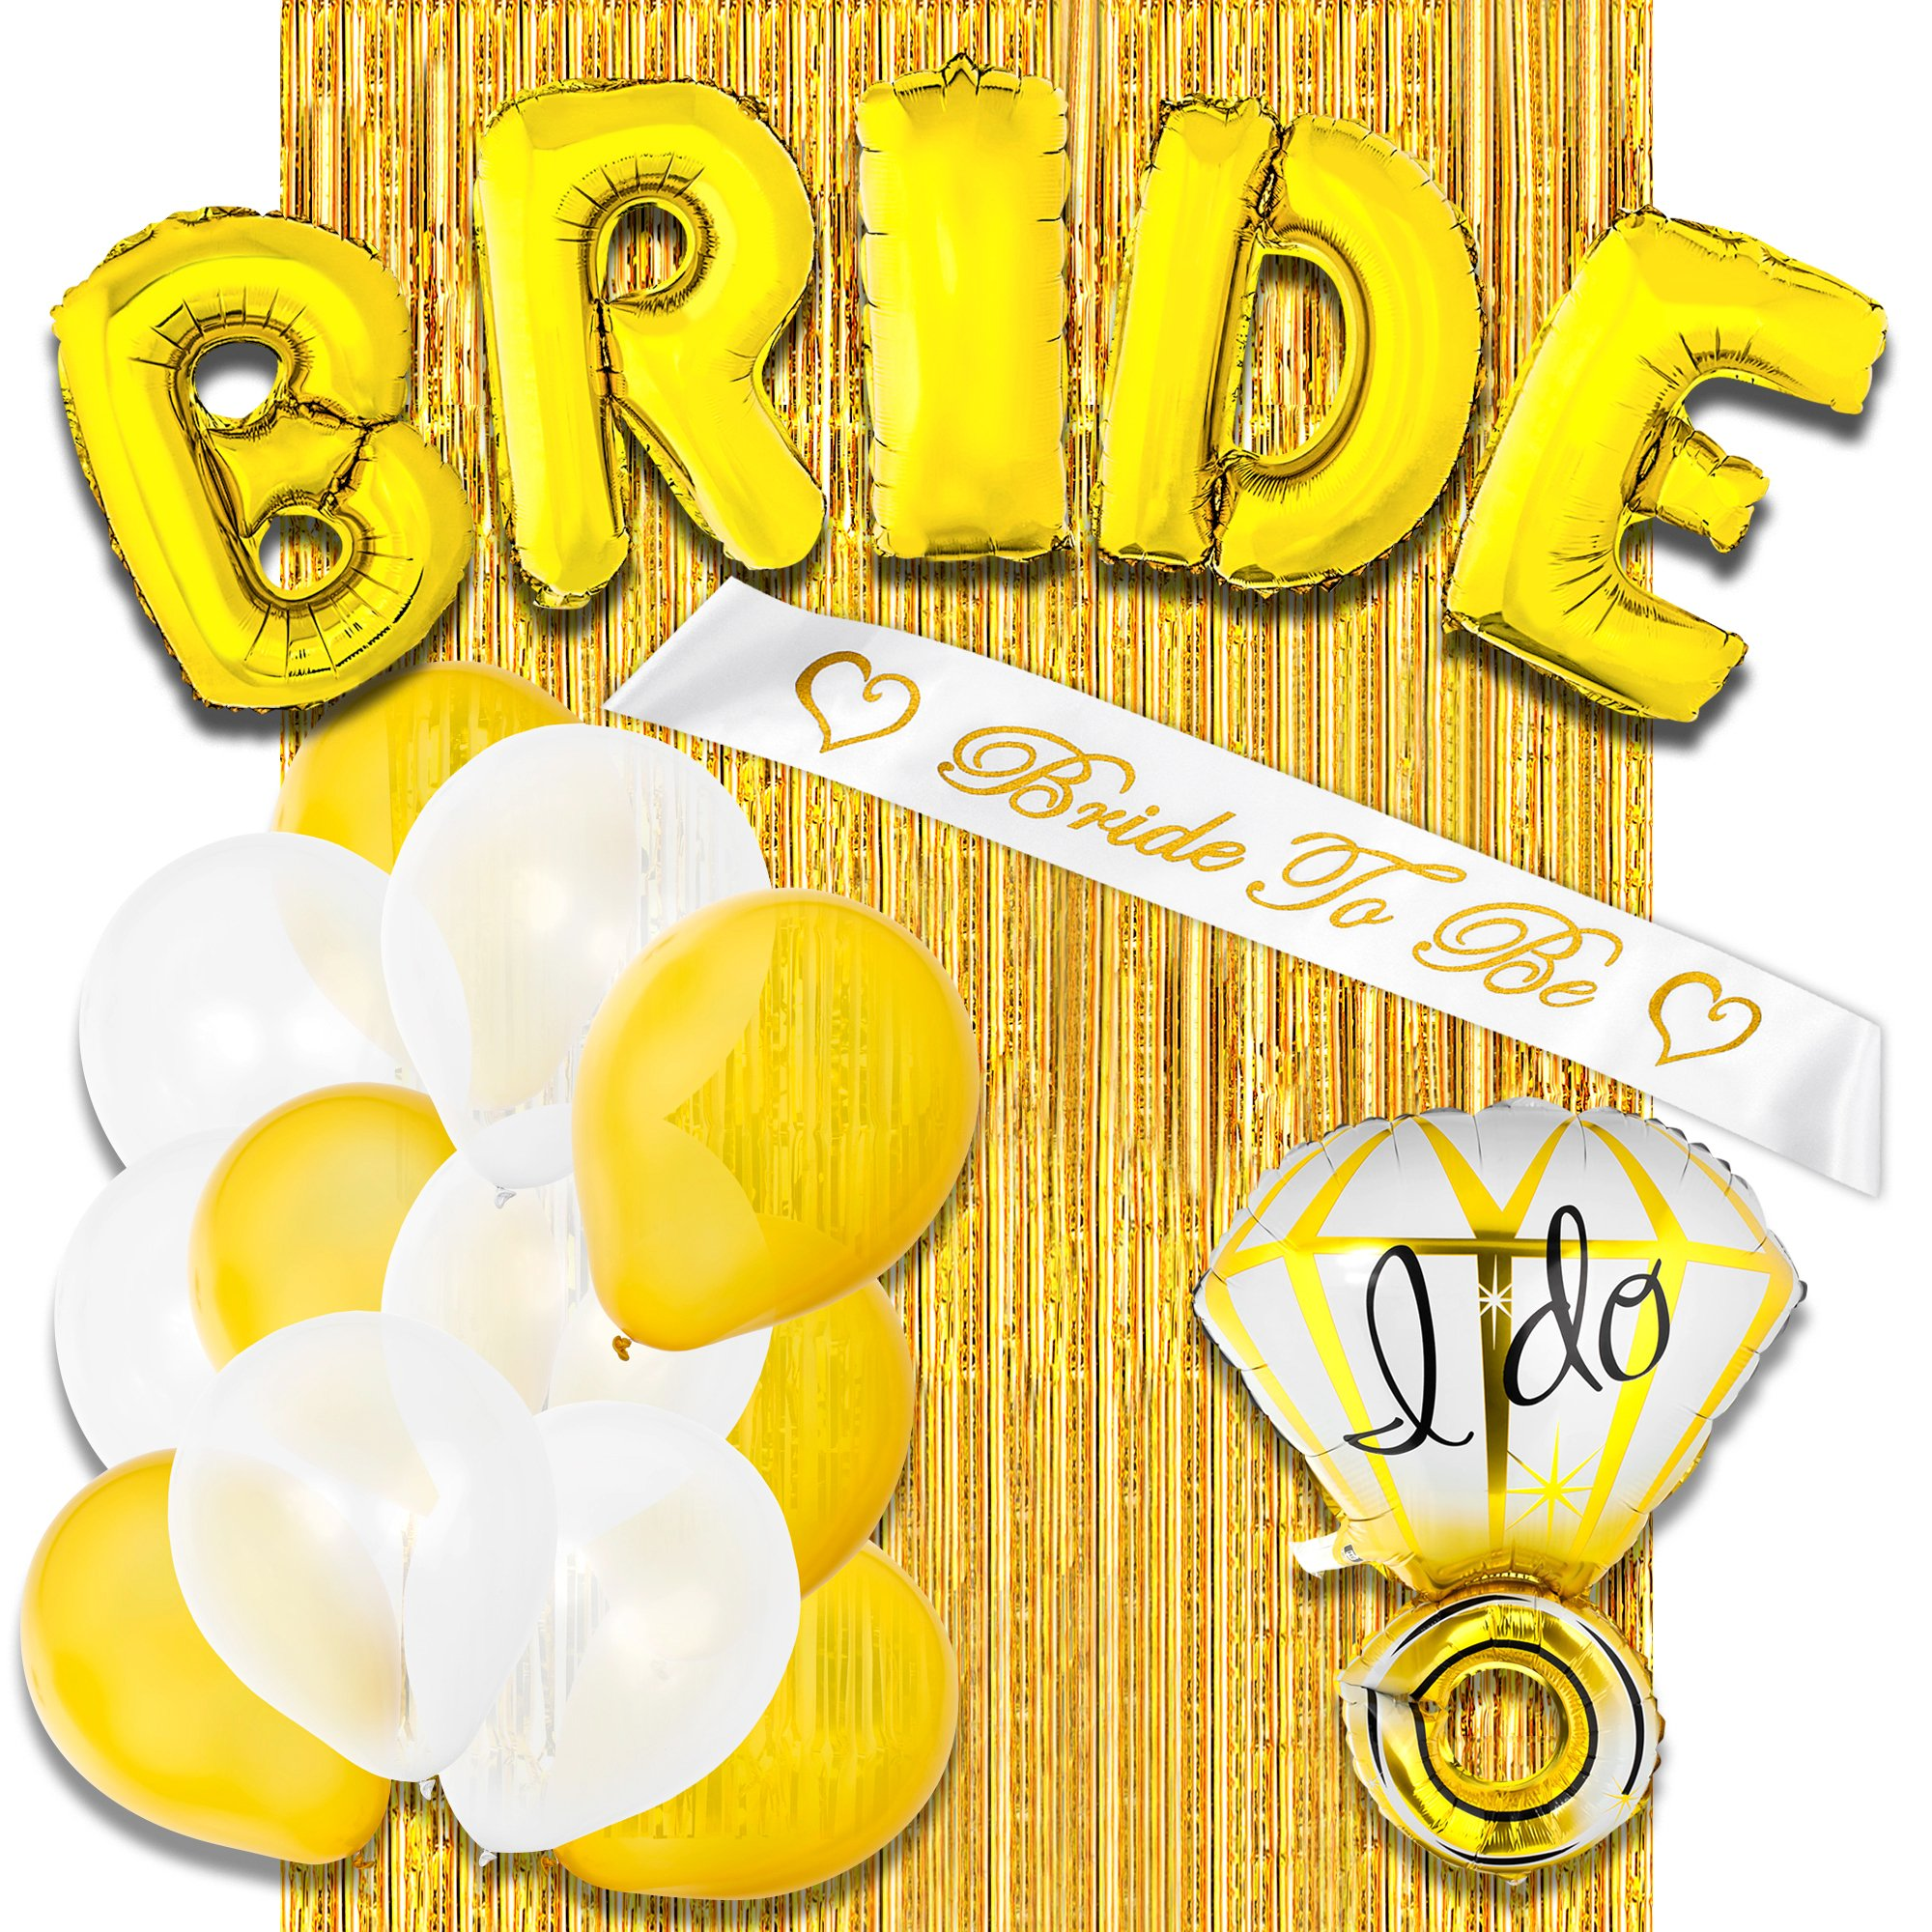 Bachelorette Party Decorations Supplies & Bridal Shower Decorations Kit - Includes: BRIDE Foil Balloon, Ring Foil Balloon, Bride To Be Sash, Gold Foil Curtain, 12 Latex Balloons by TSFZ